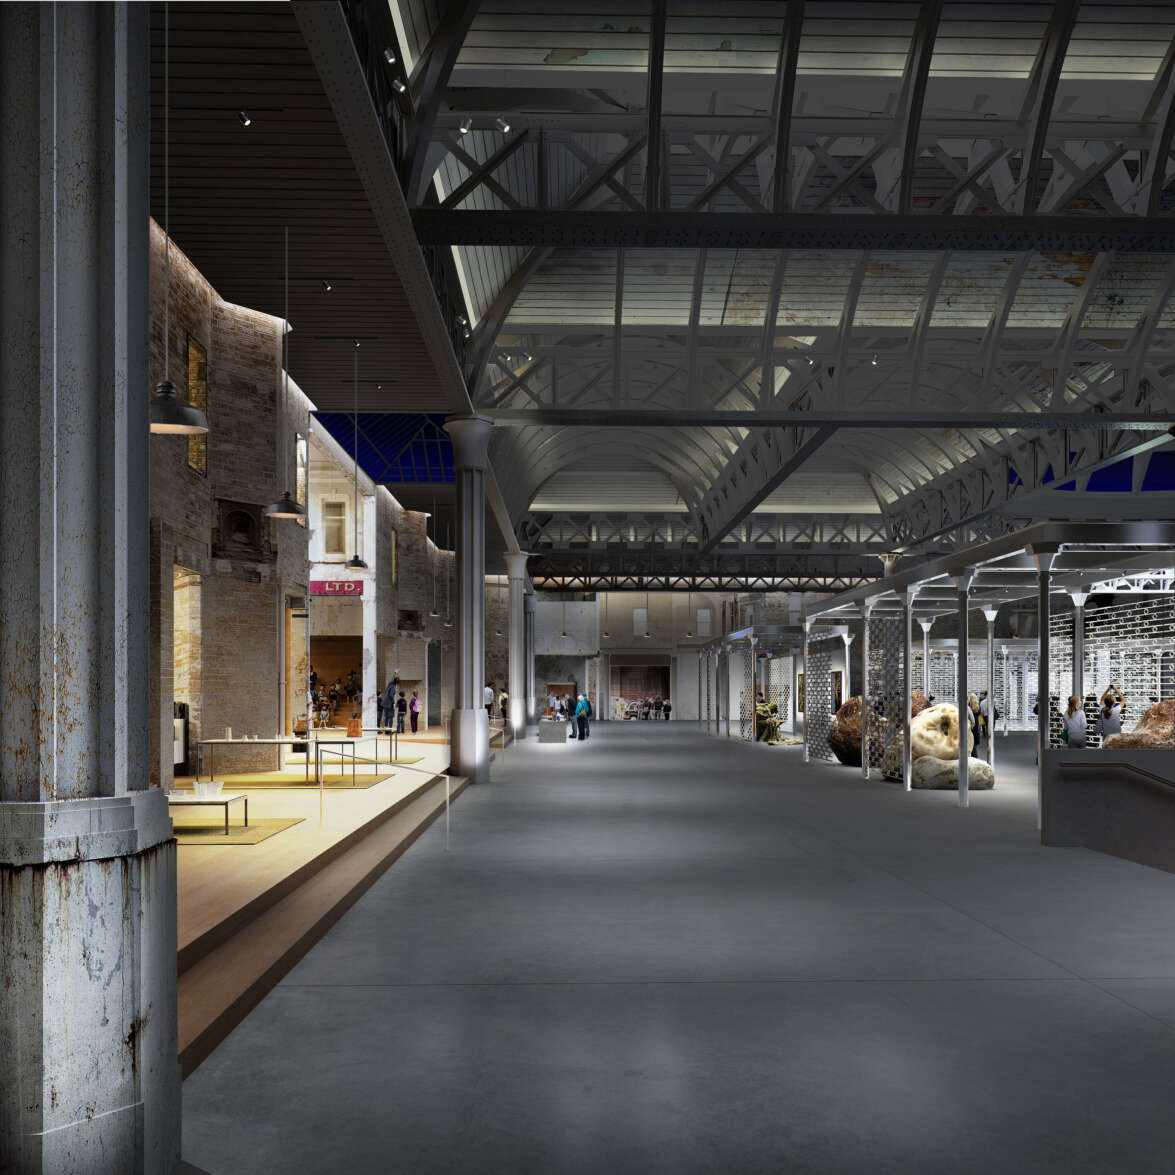 Planning approved for Museum of London relocation project